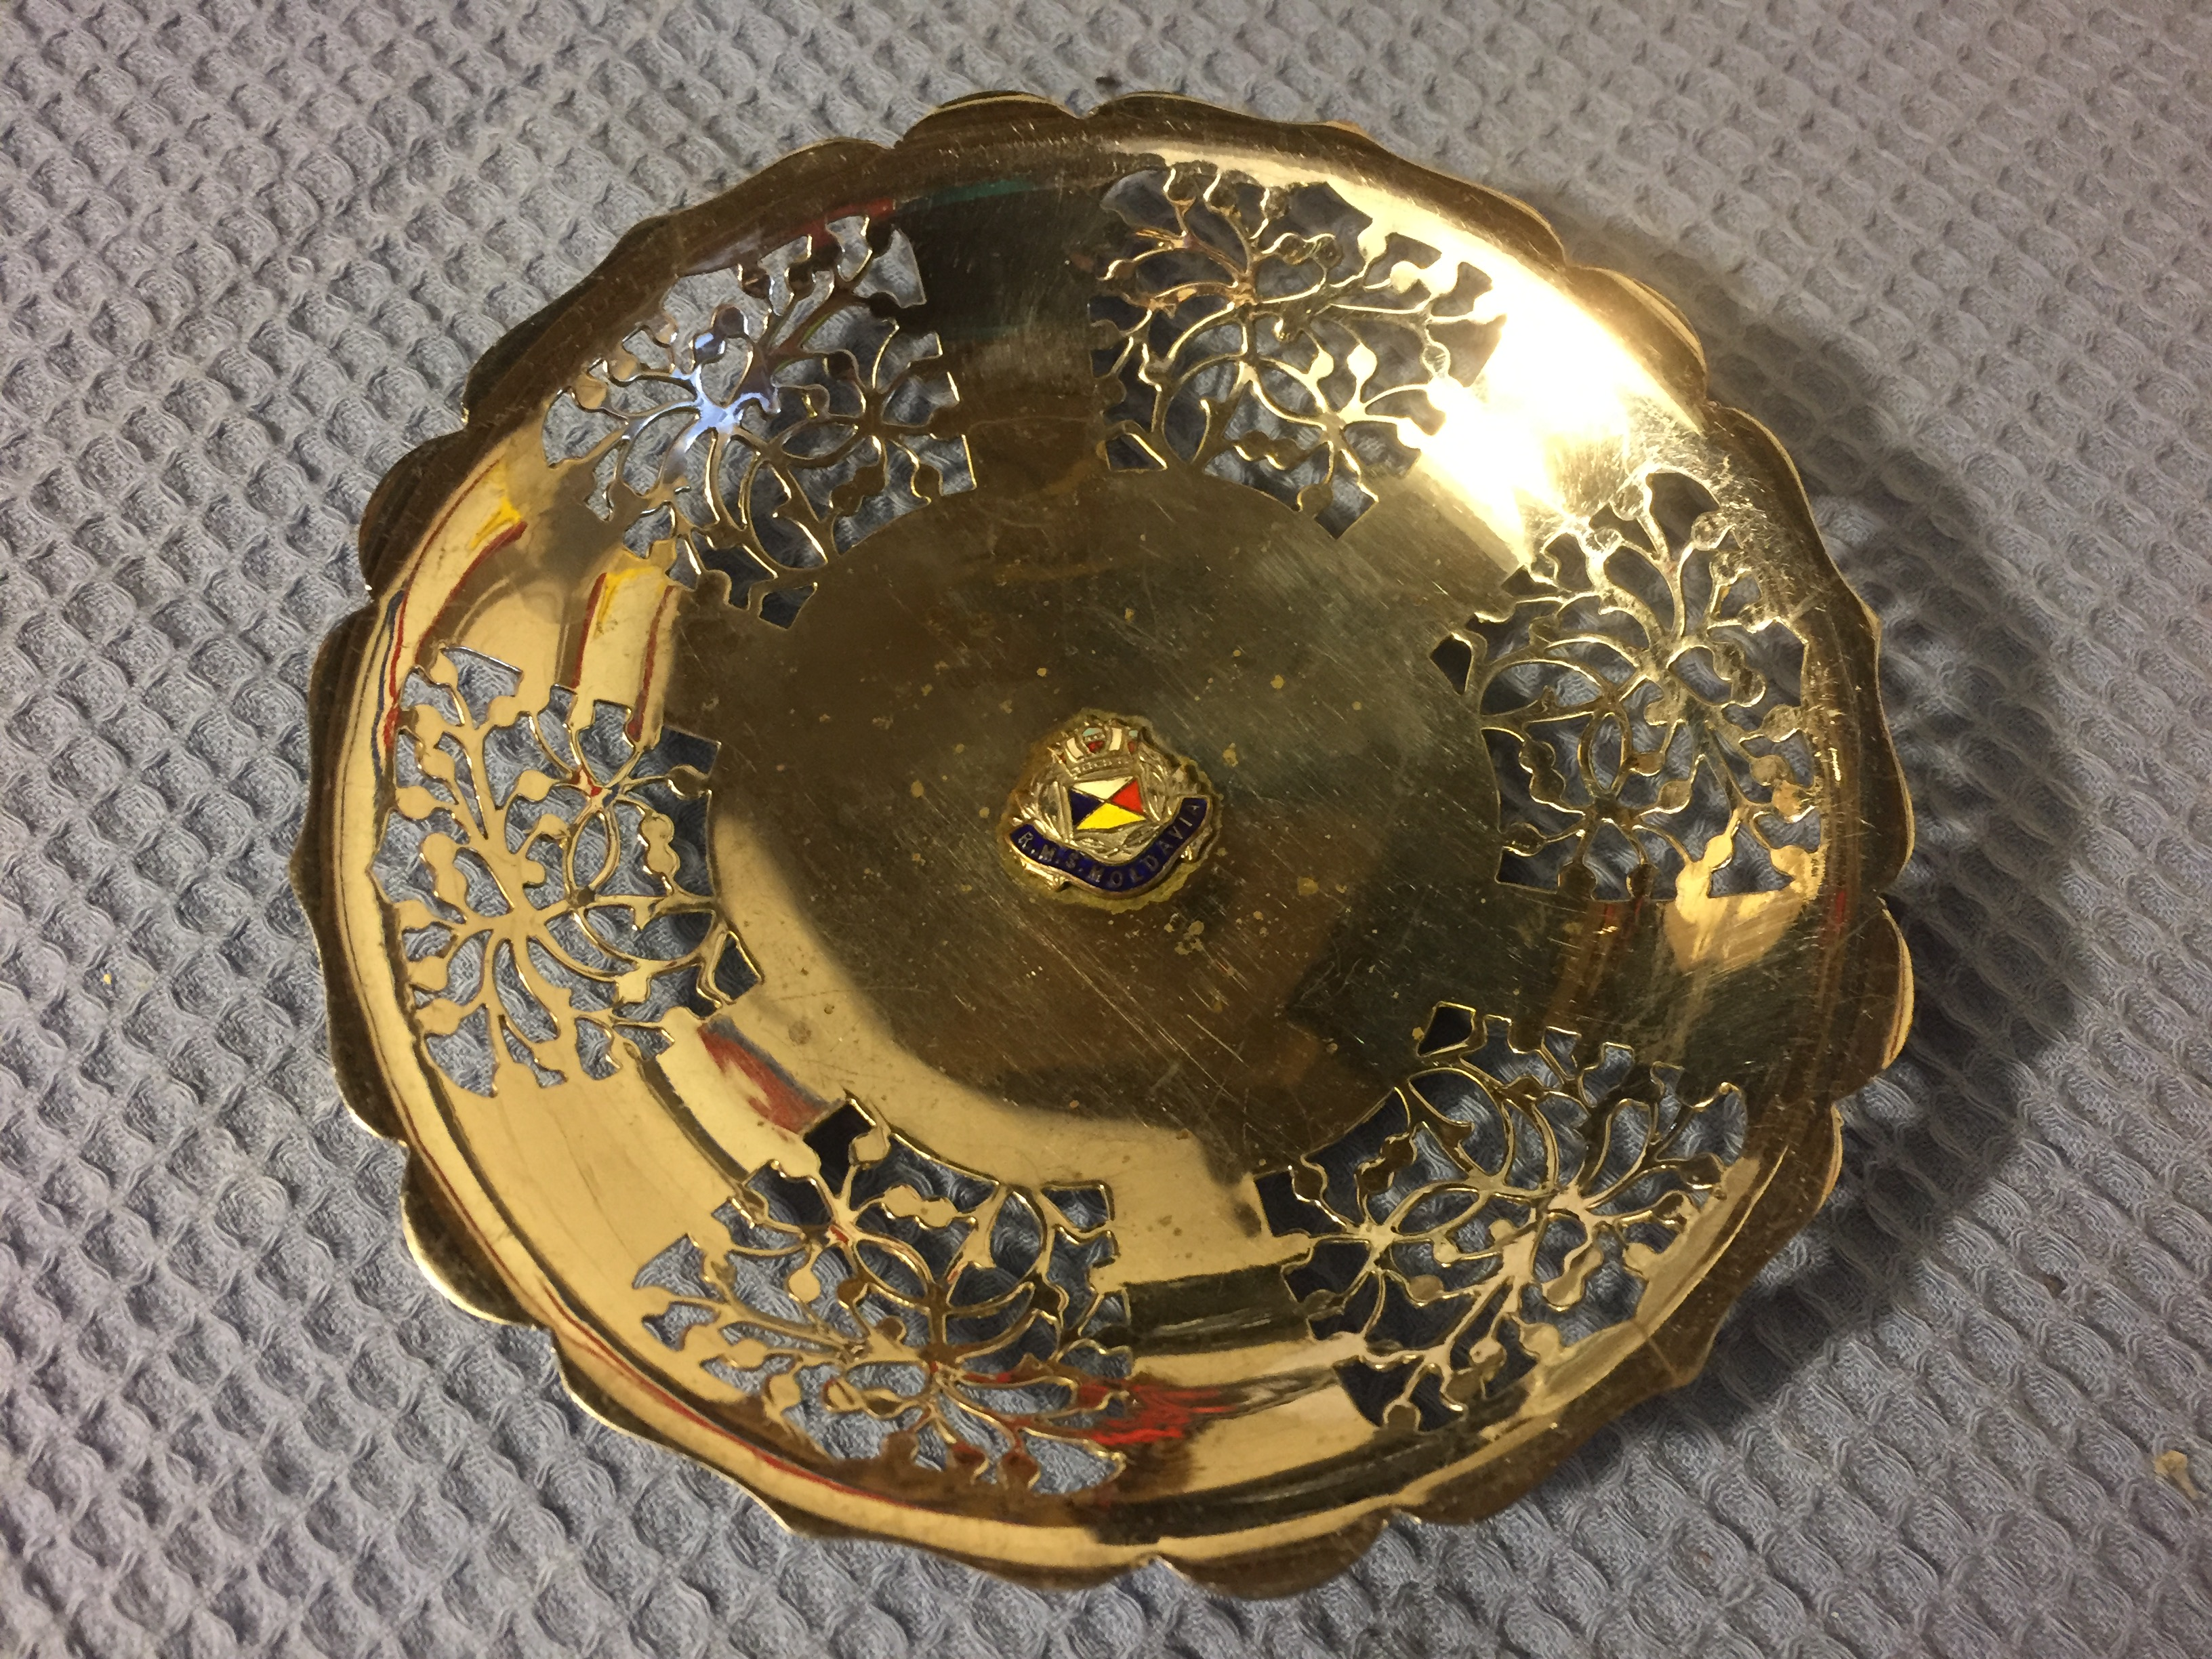 VERY RARE FIND ORNAMENTAL METAL DISH FROM THE OLD P&O LINE VESSEL THE RMS MOLDAVIA